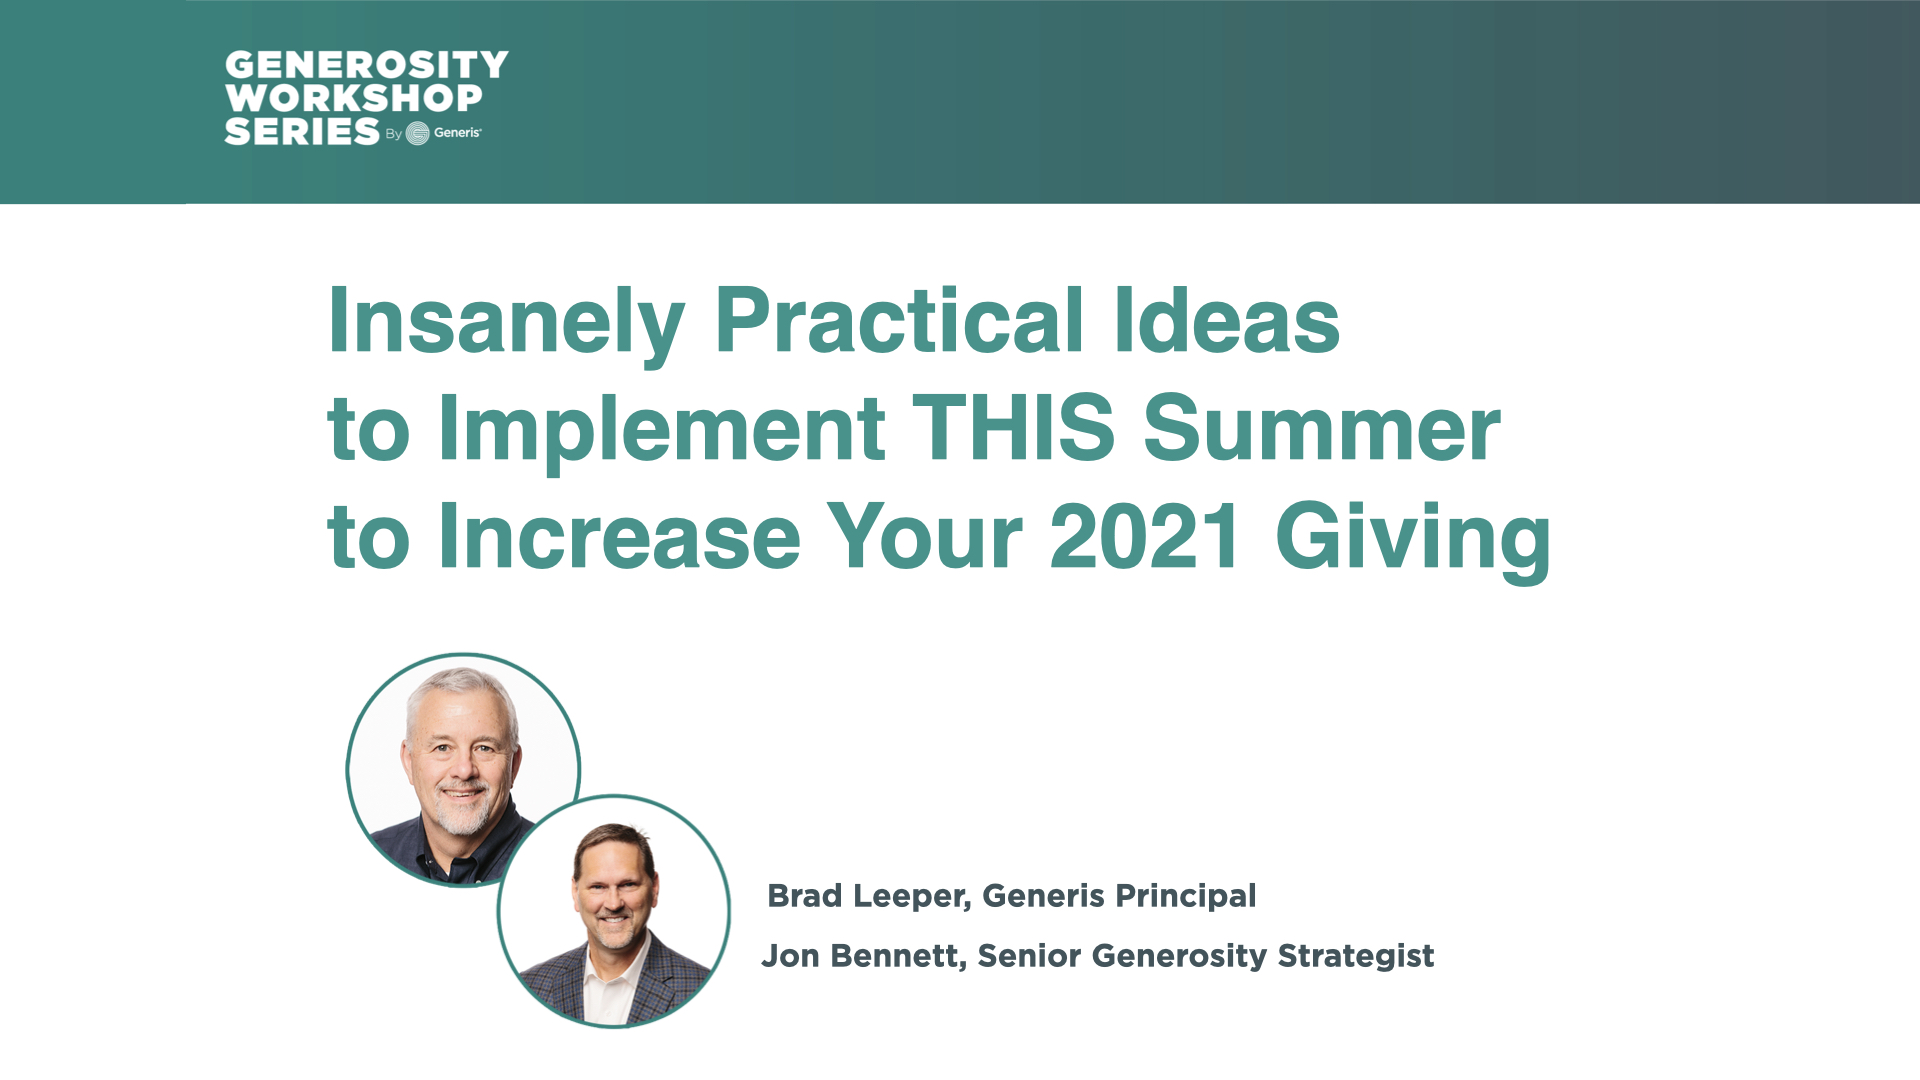 Practical Ideas to Implement THIS Summer to Increase Your 2021 Giving